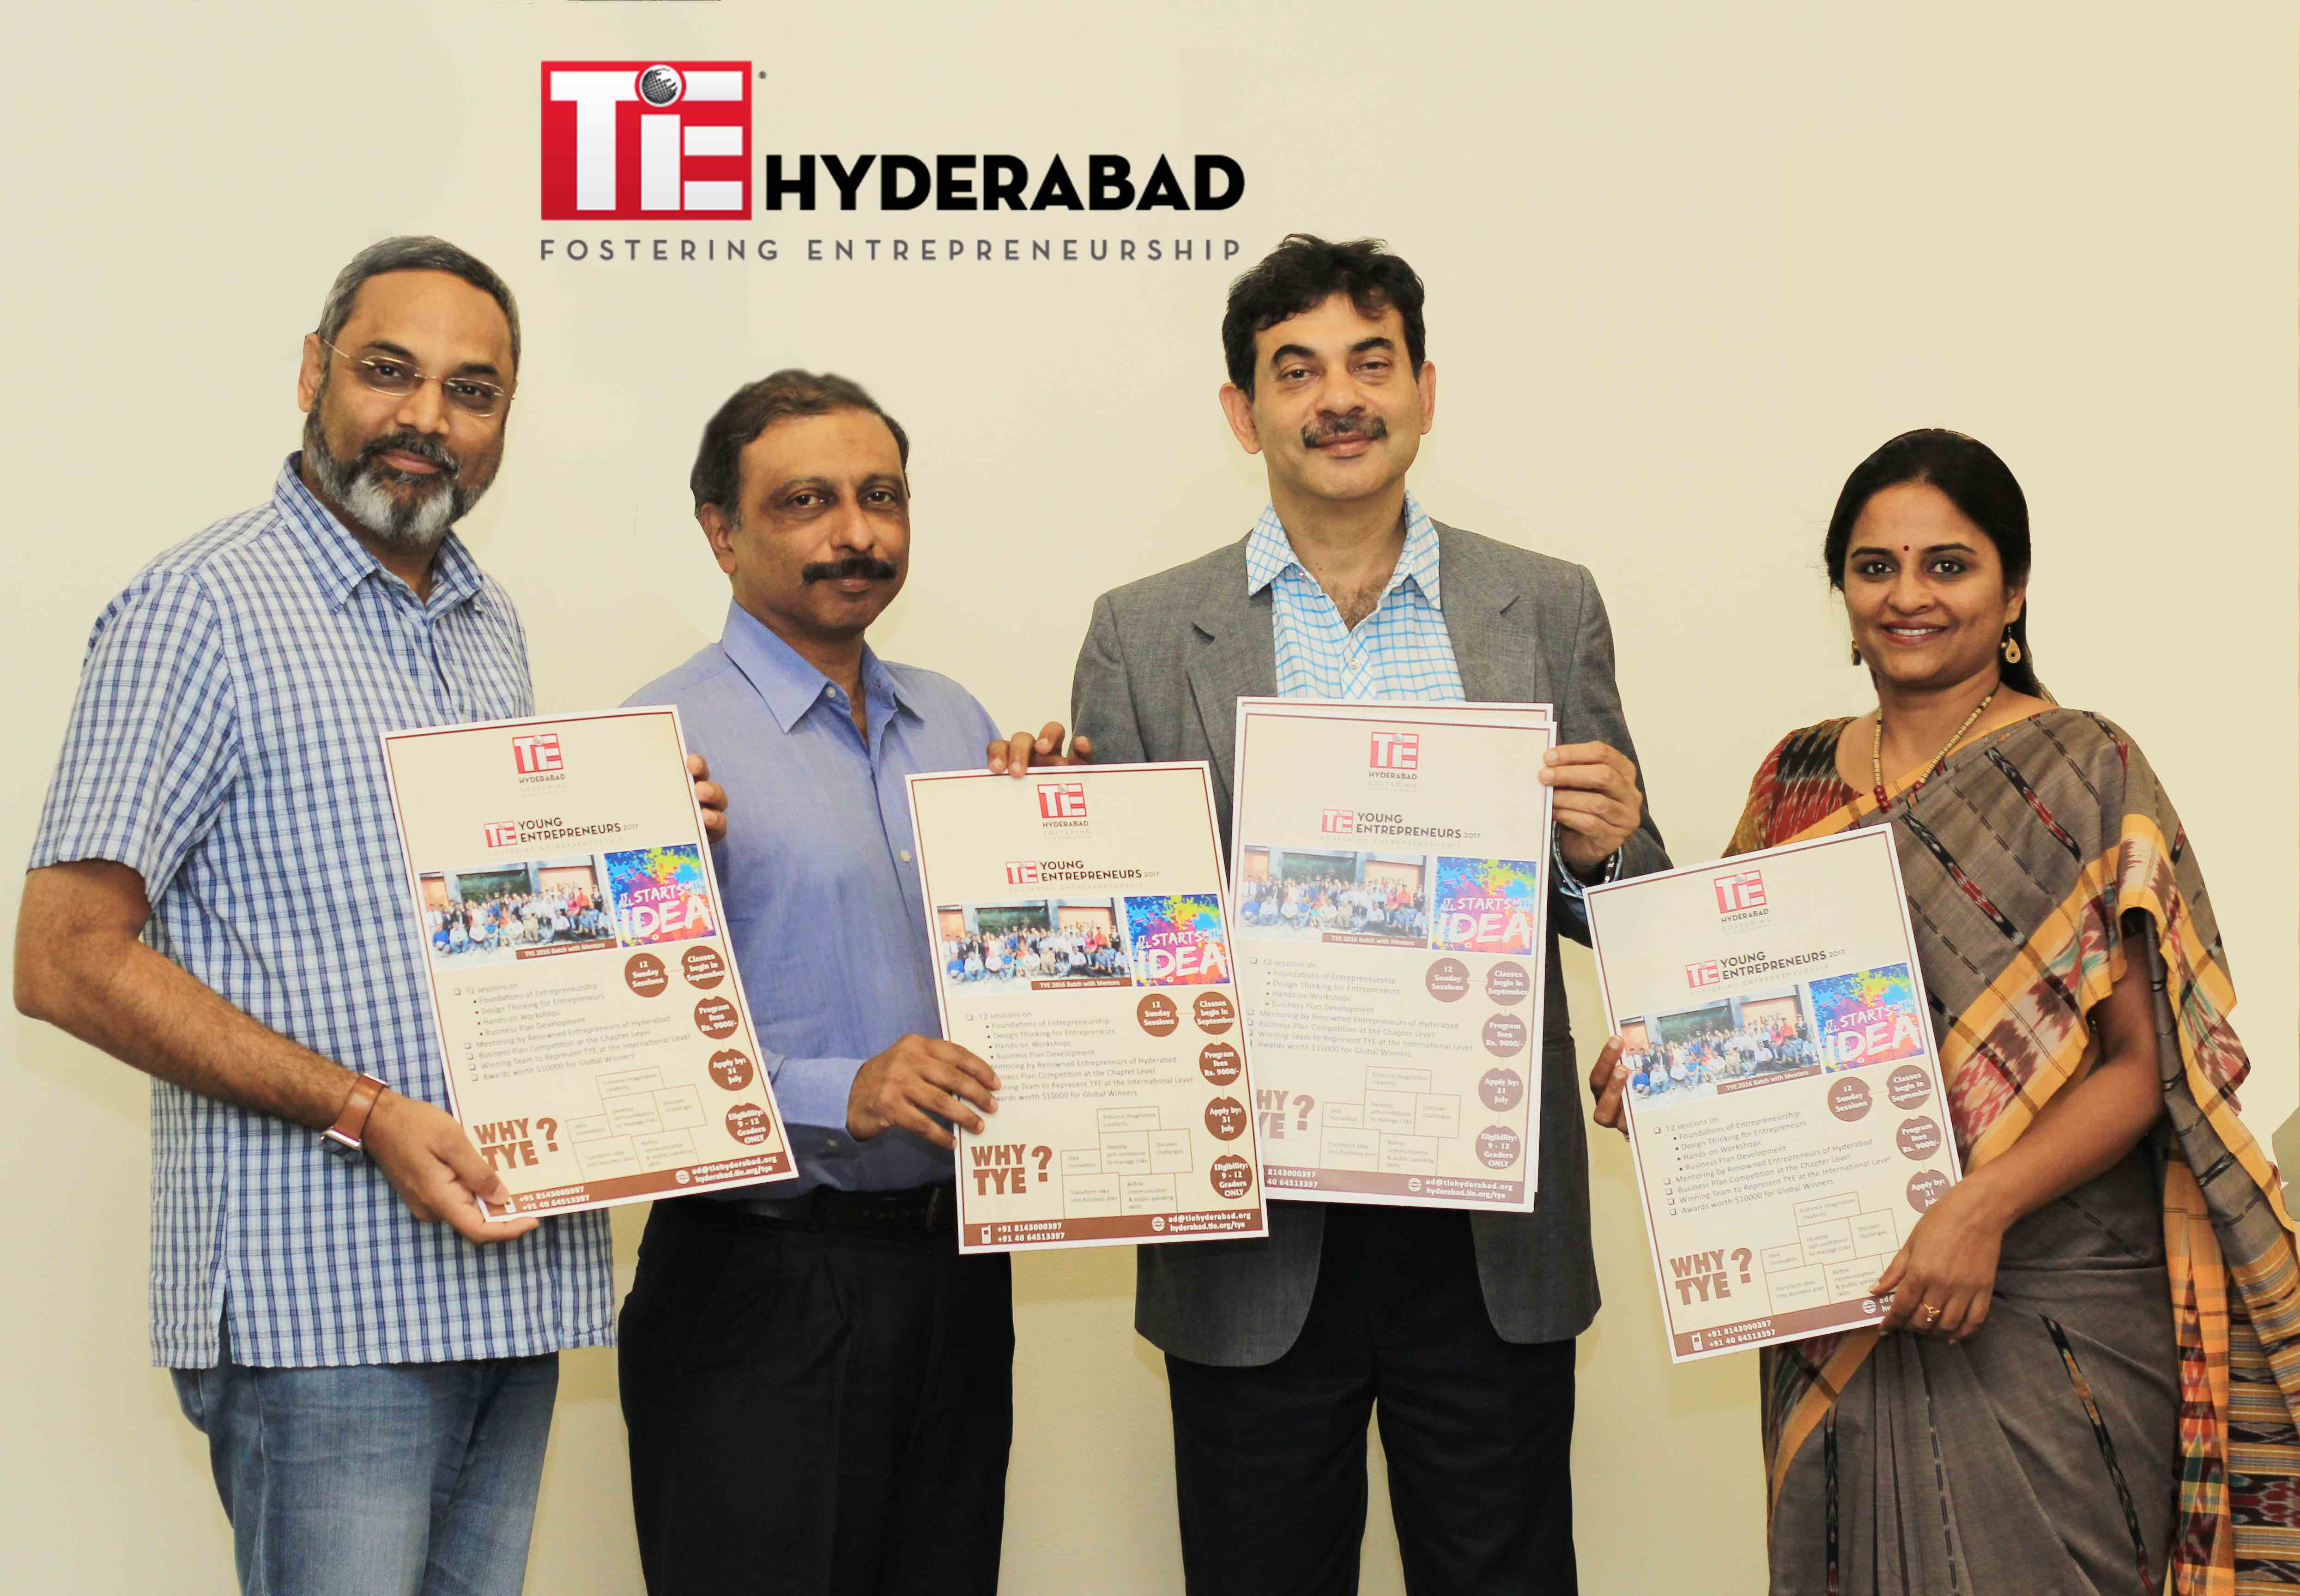 tie-hyderabad-tye-launch